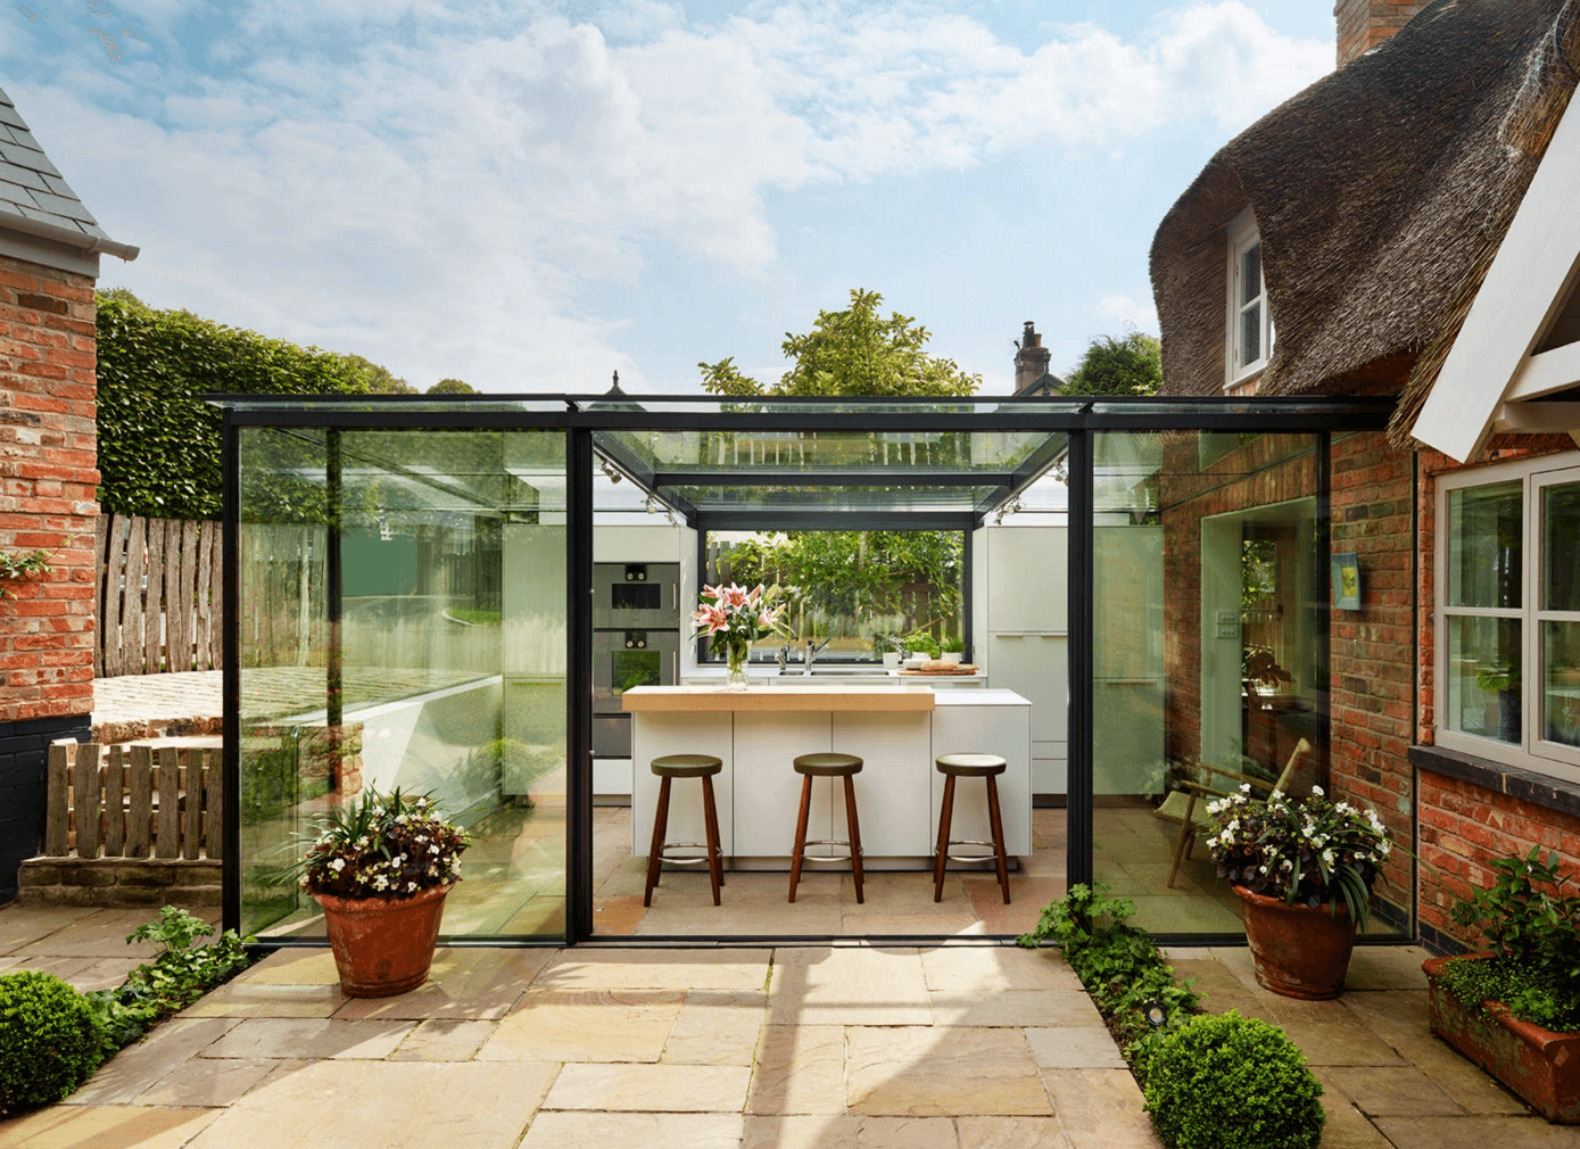 18th-century English cottage renovated with breathtaking glass-enclosed kitchen extension